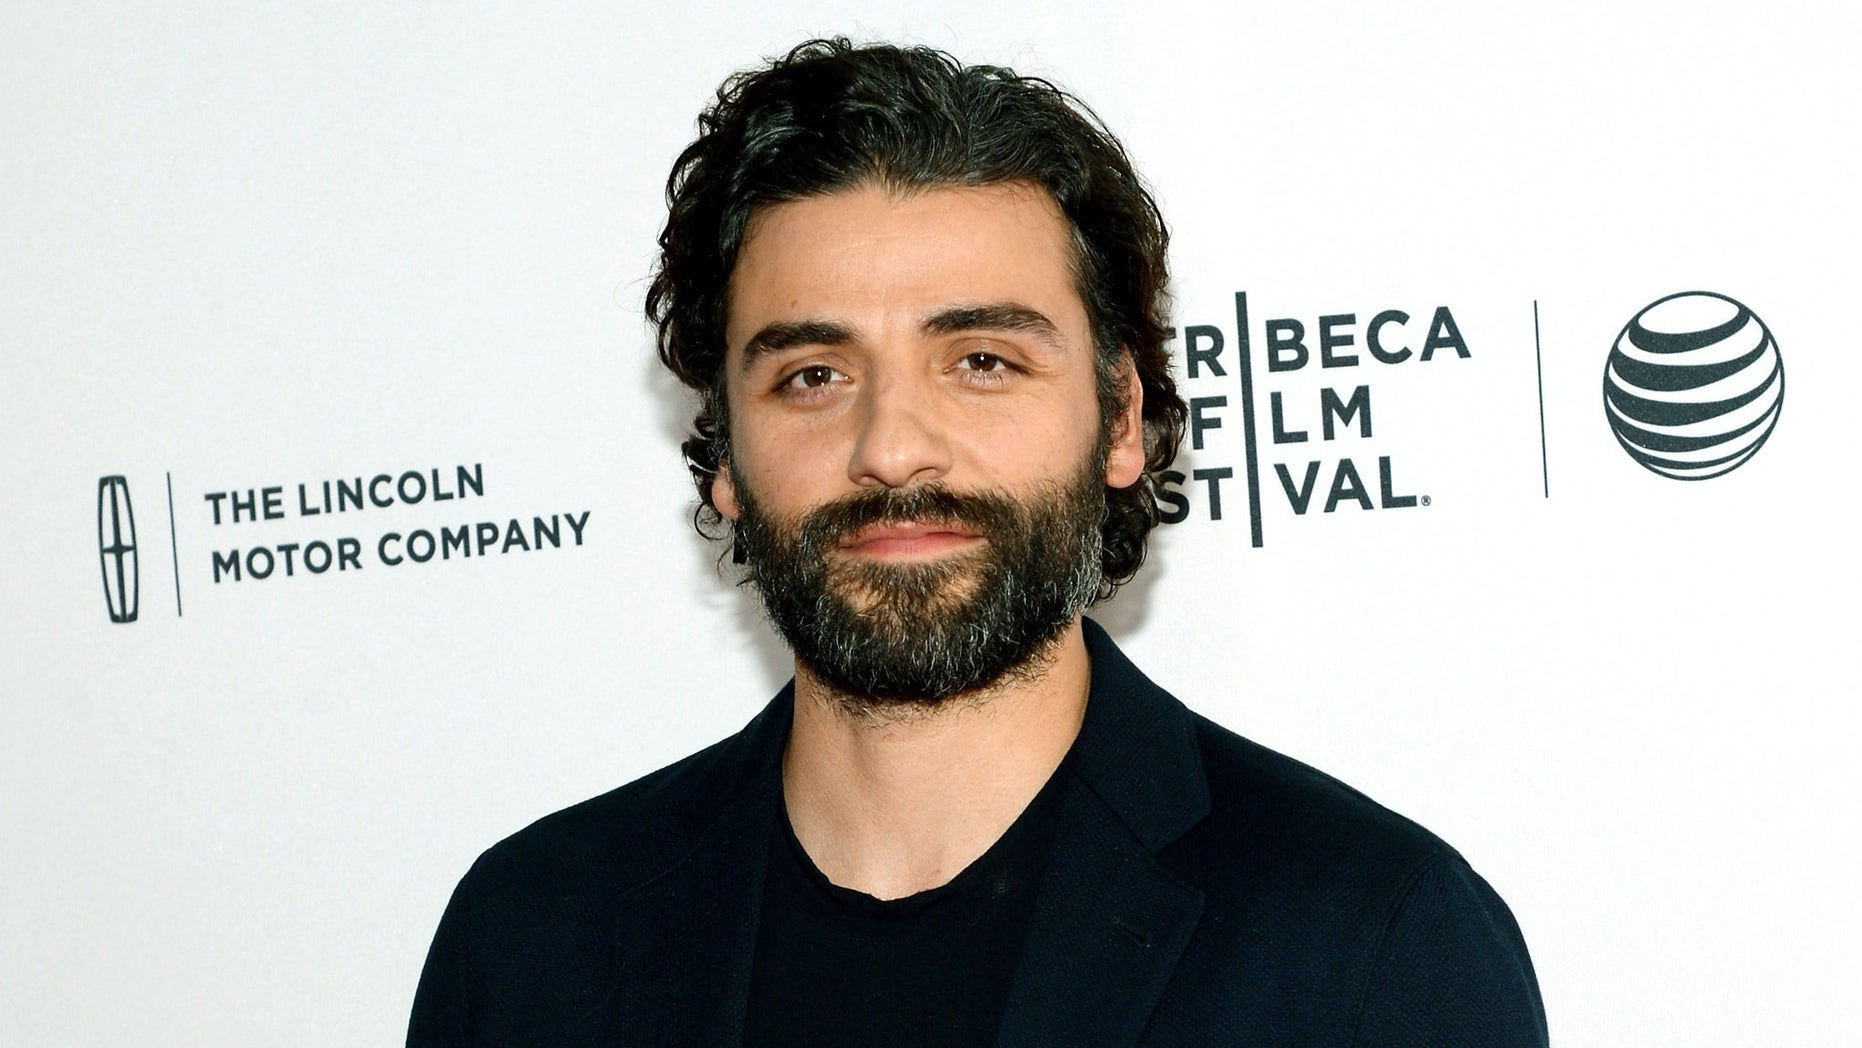 """NEW YORK, NY - APRIL 18: Oscar Isaac attends the premiere of """"Mojave"""" during the 2015 Tribeca Film Festival at the SVA Theater on April 18, 2015 in New York City.  (Photo by Ben Gabbe/Getty Images for the 2015 Tribeca Film Festival)"""